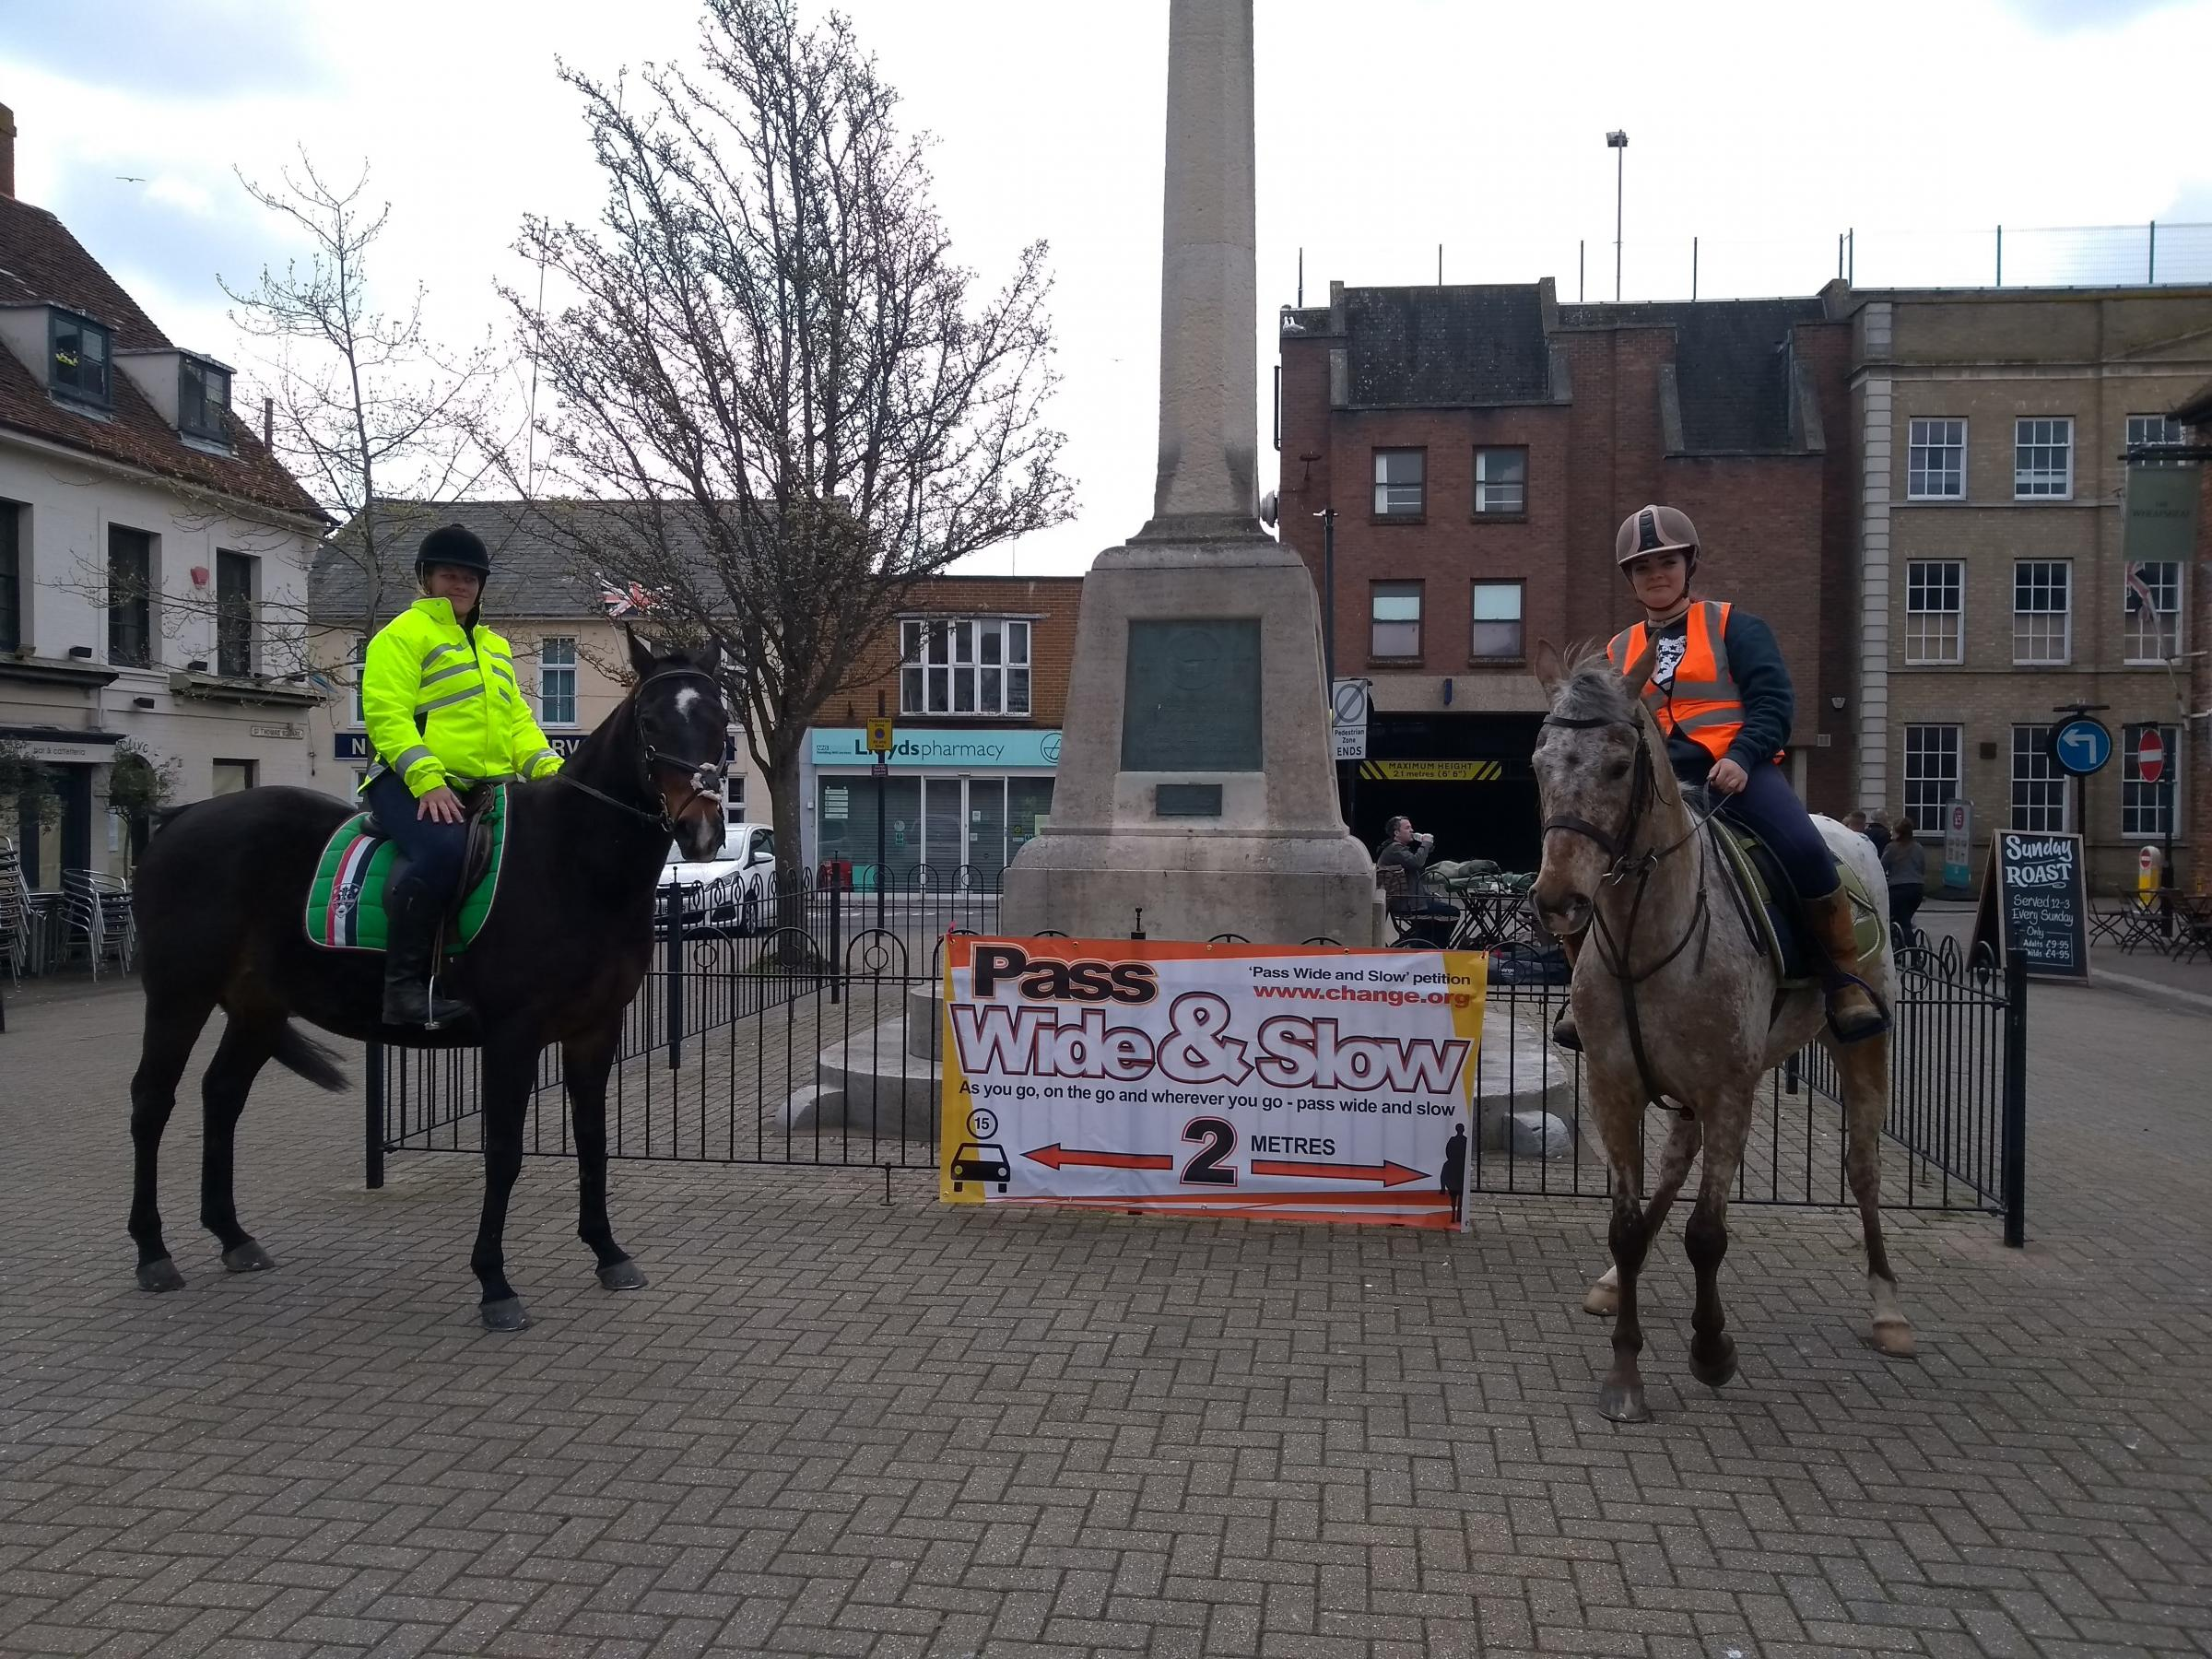 Horse riders gathered in Newport's Sts Thomas' Square as part of a national campaign encouraging other road users to pass wide and slow.